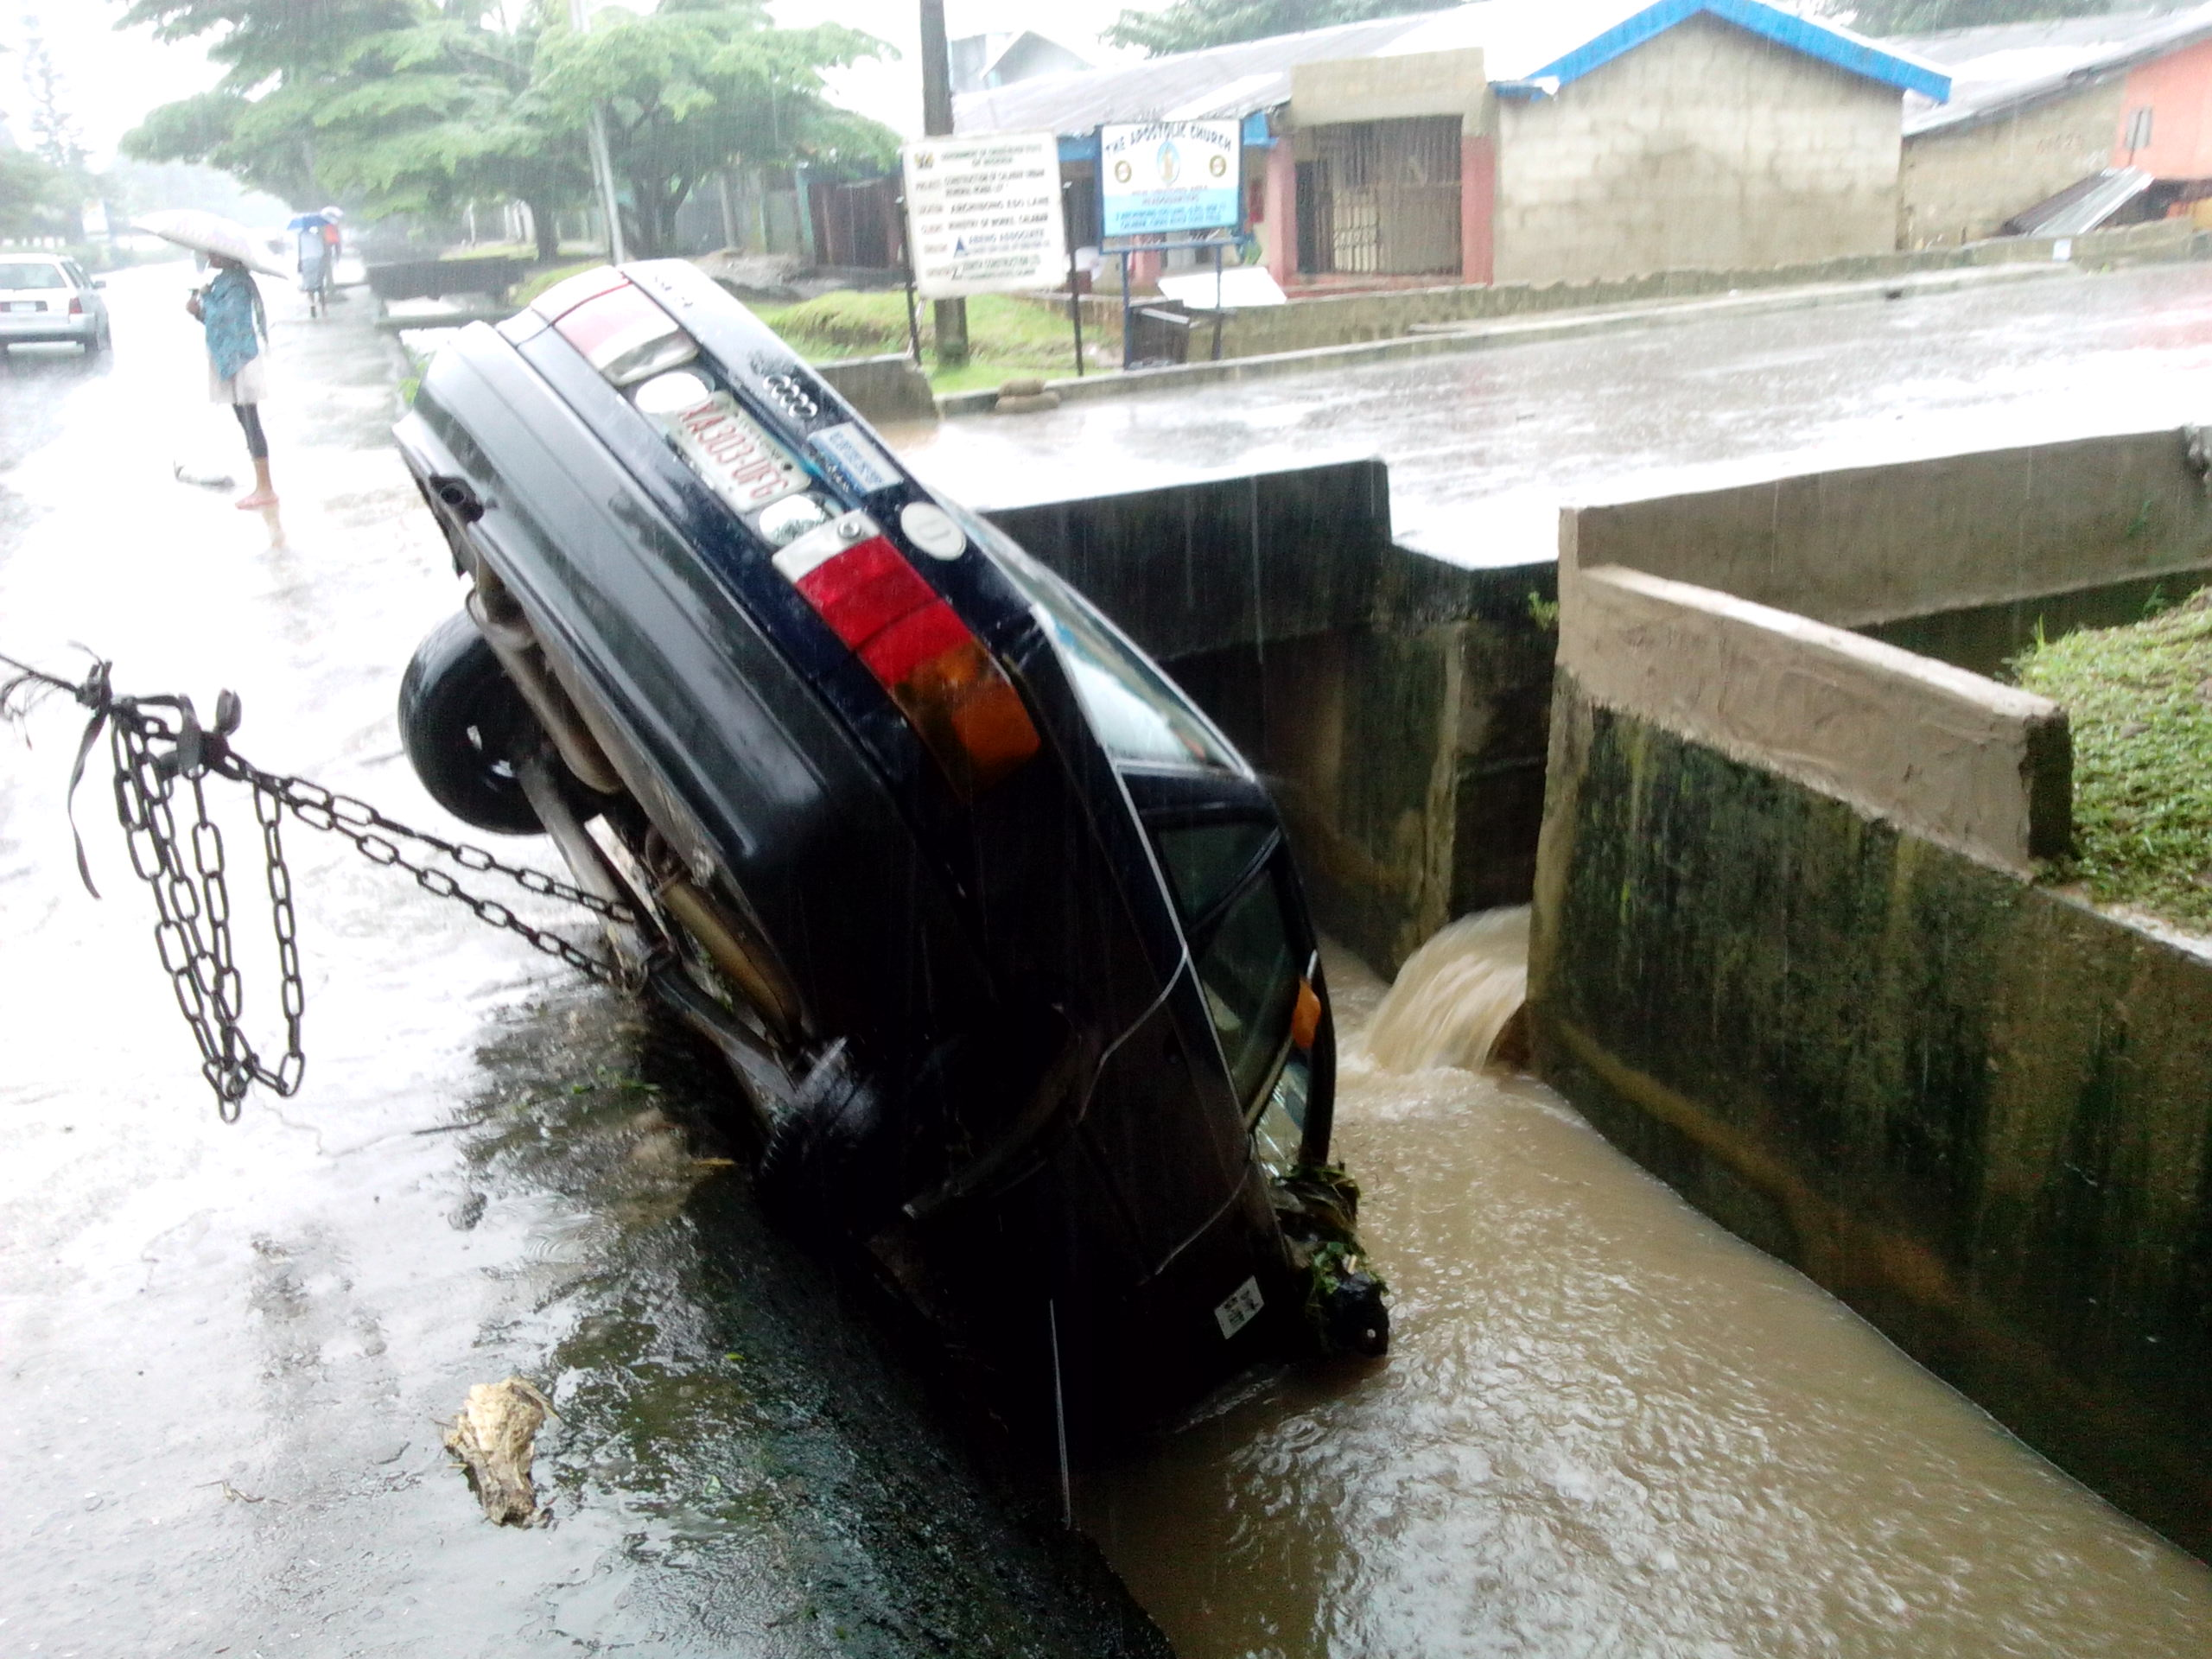 The affected taxi in the drainage